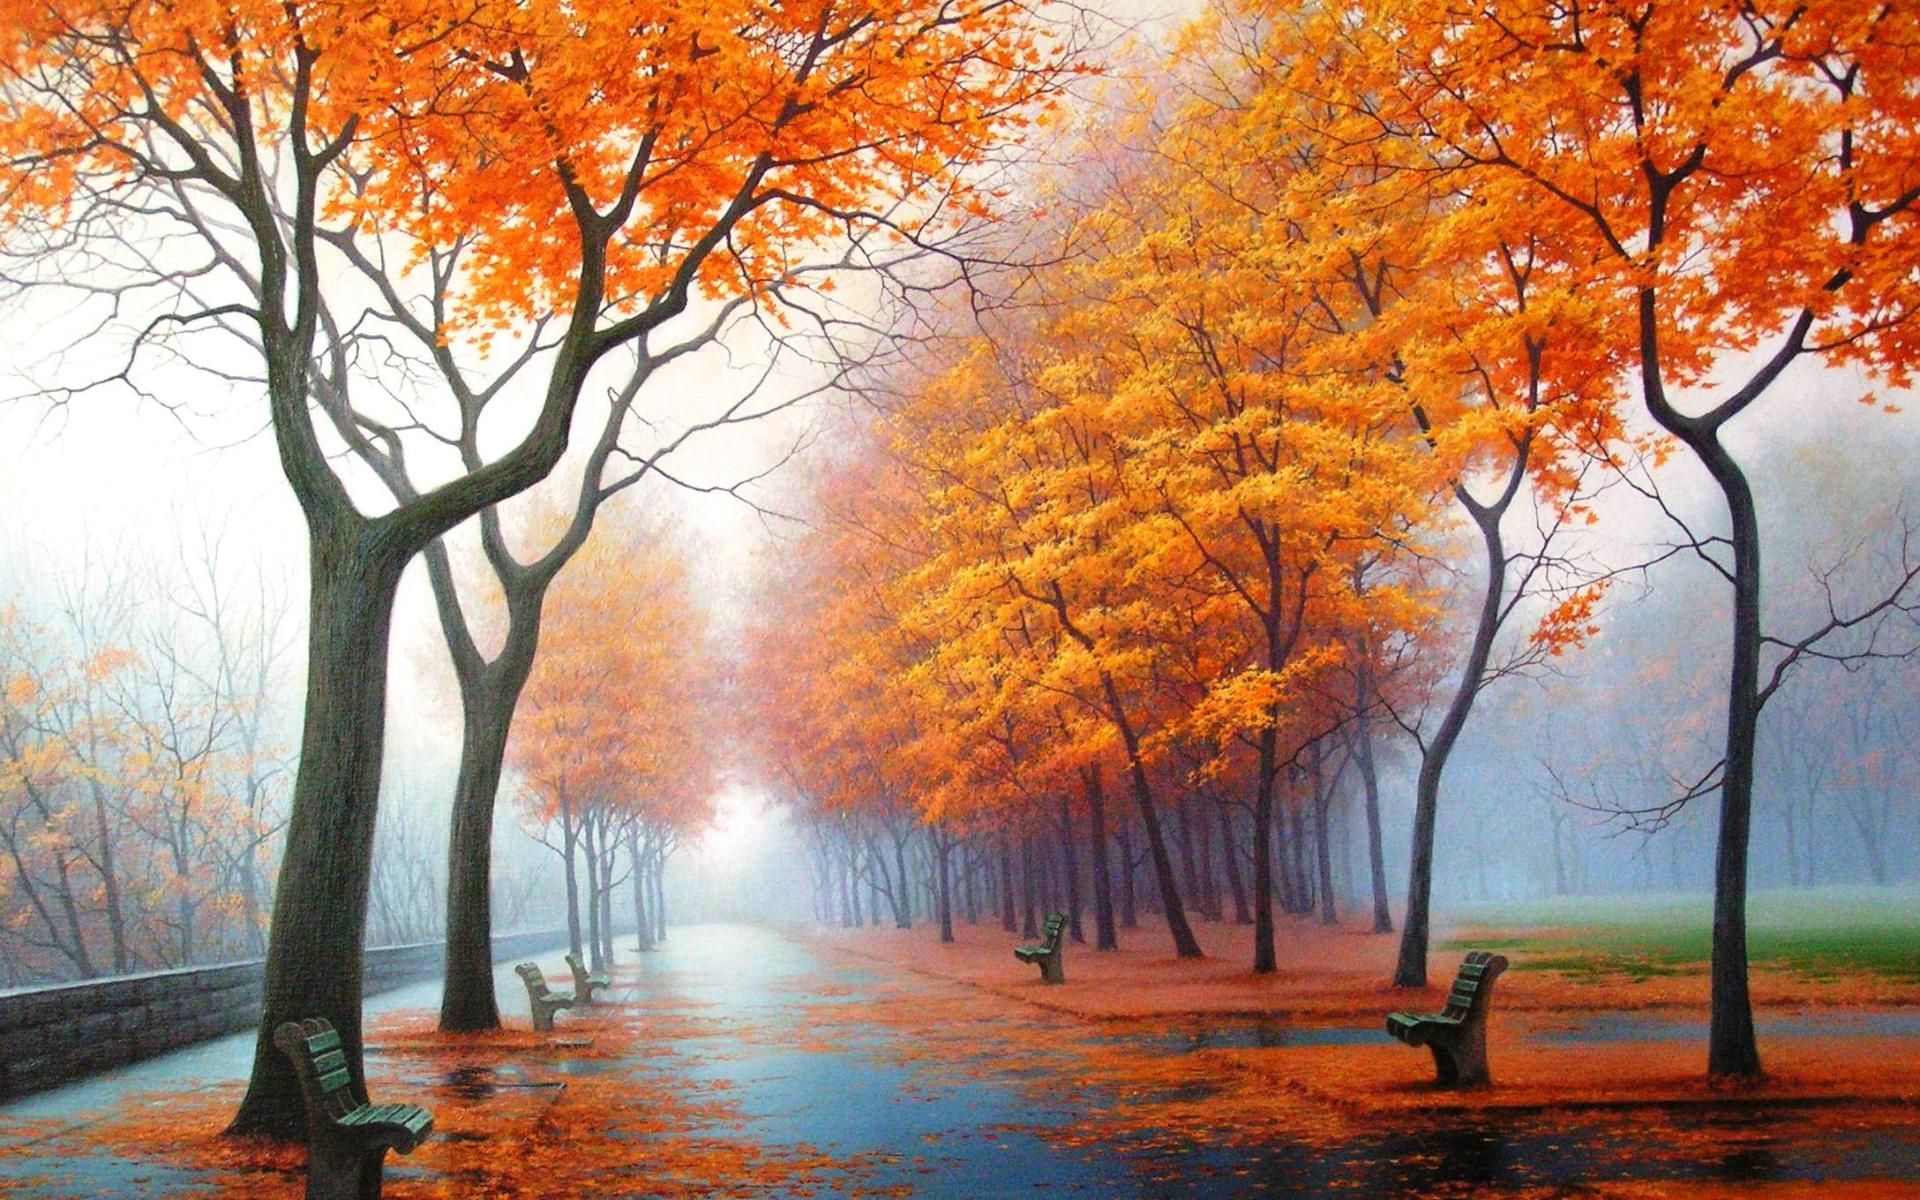 Autumn In The Park Hdr wallpaper